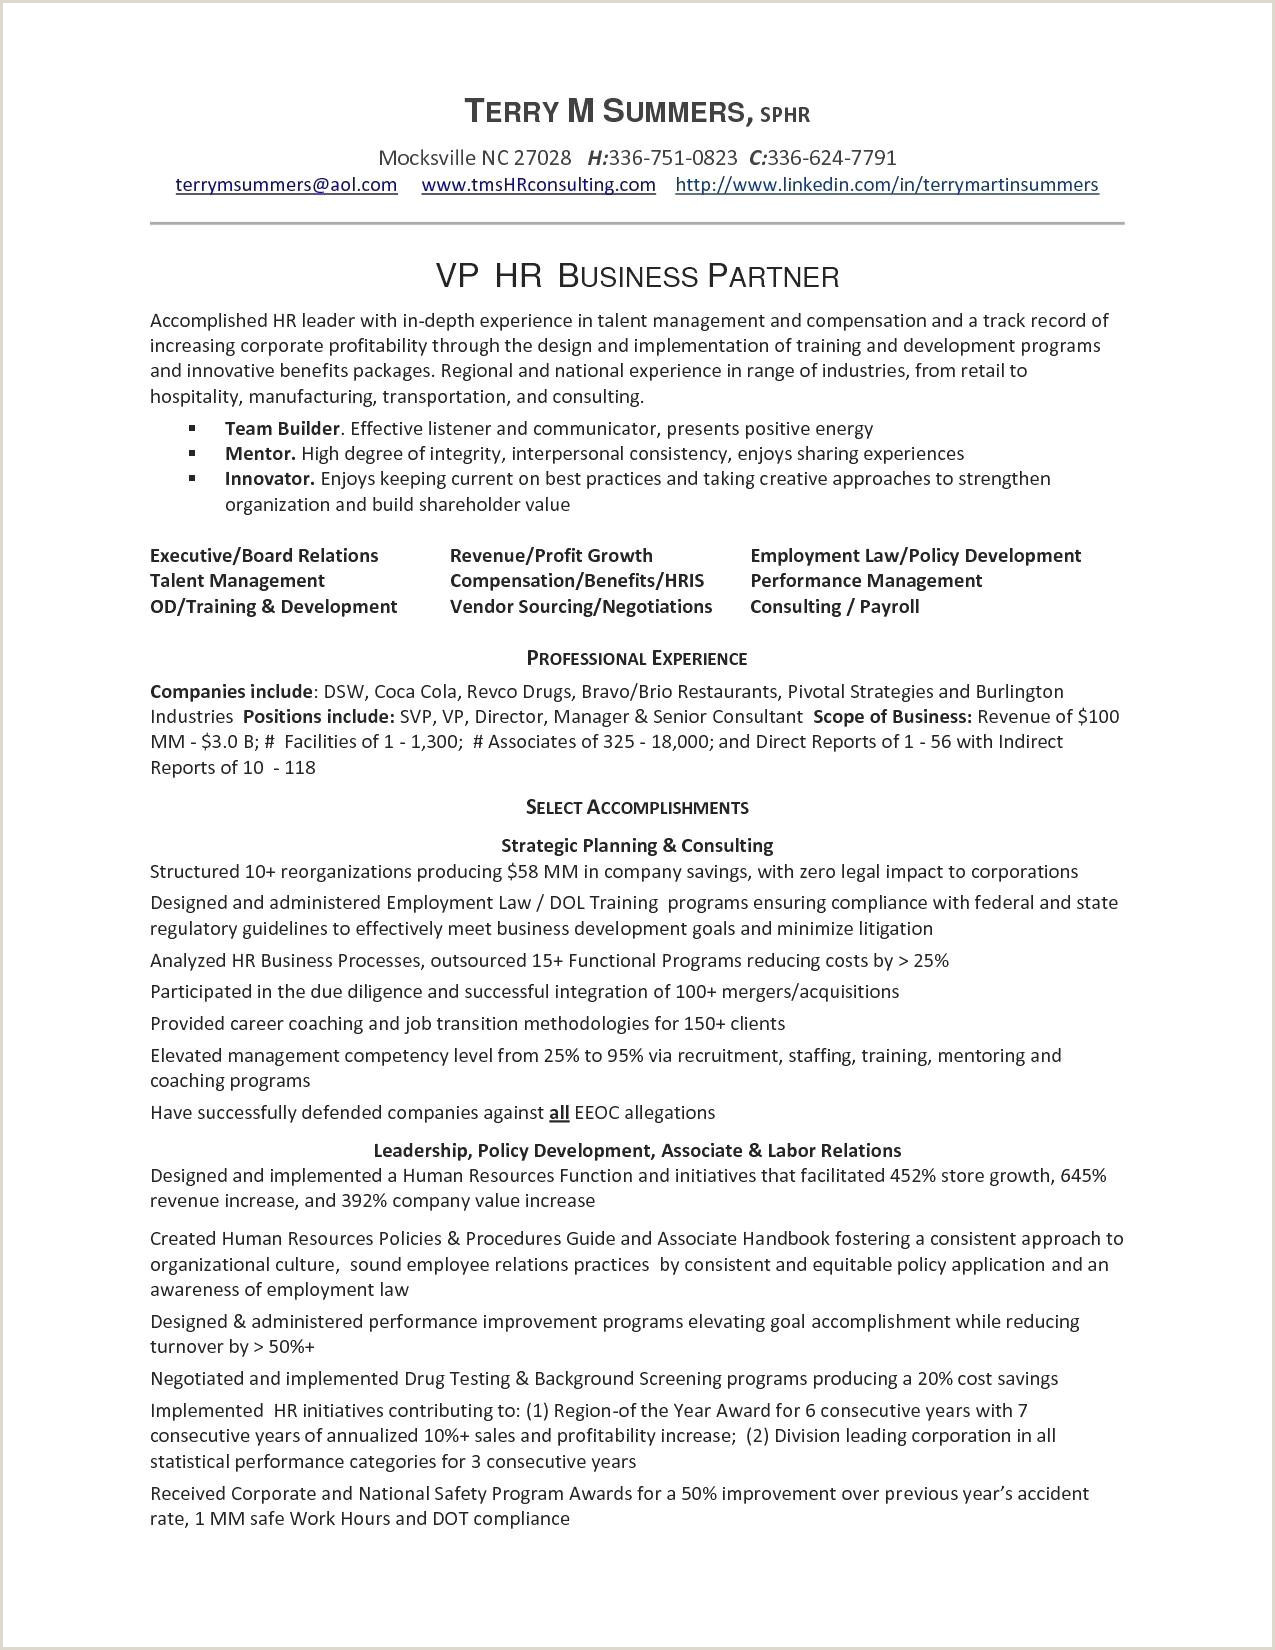 Sample Resumes for Stay at Home Moms 10 Sample Resumes for Stay at Home Moms